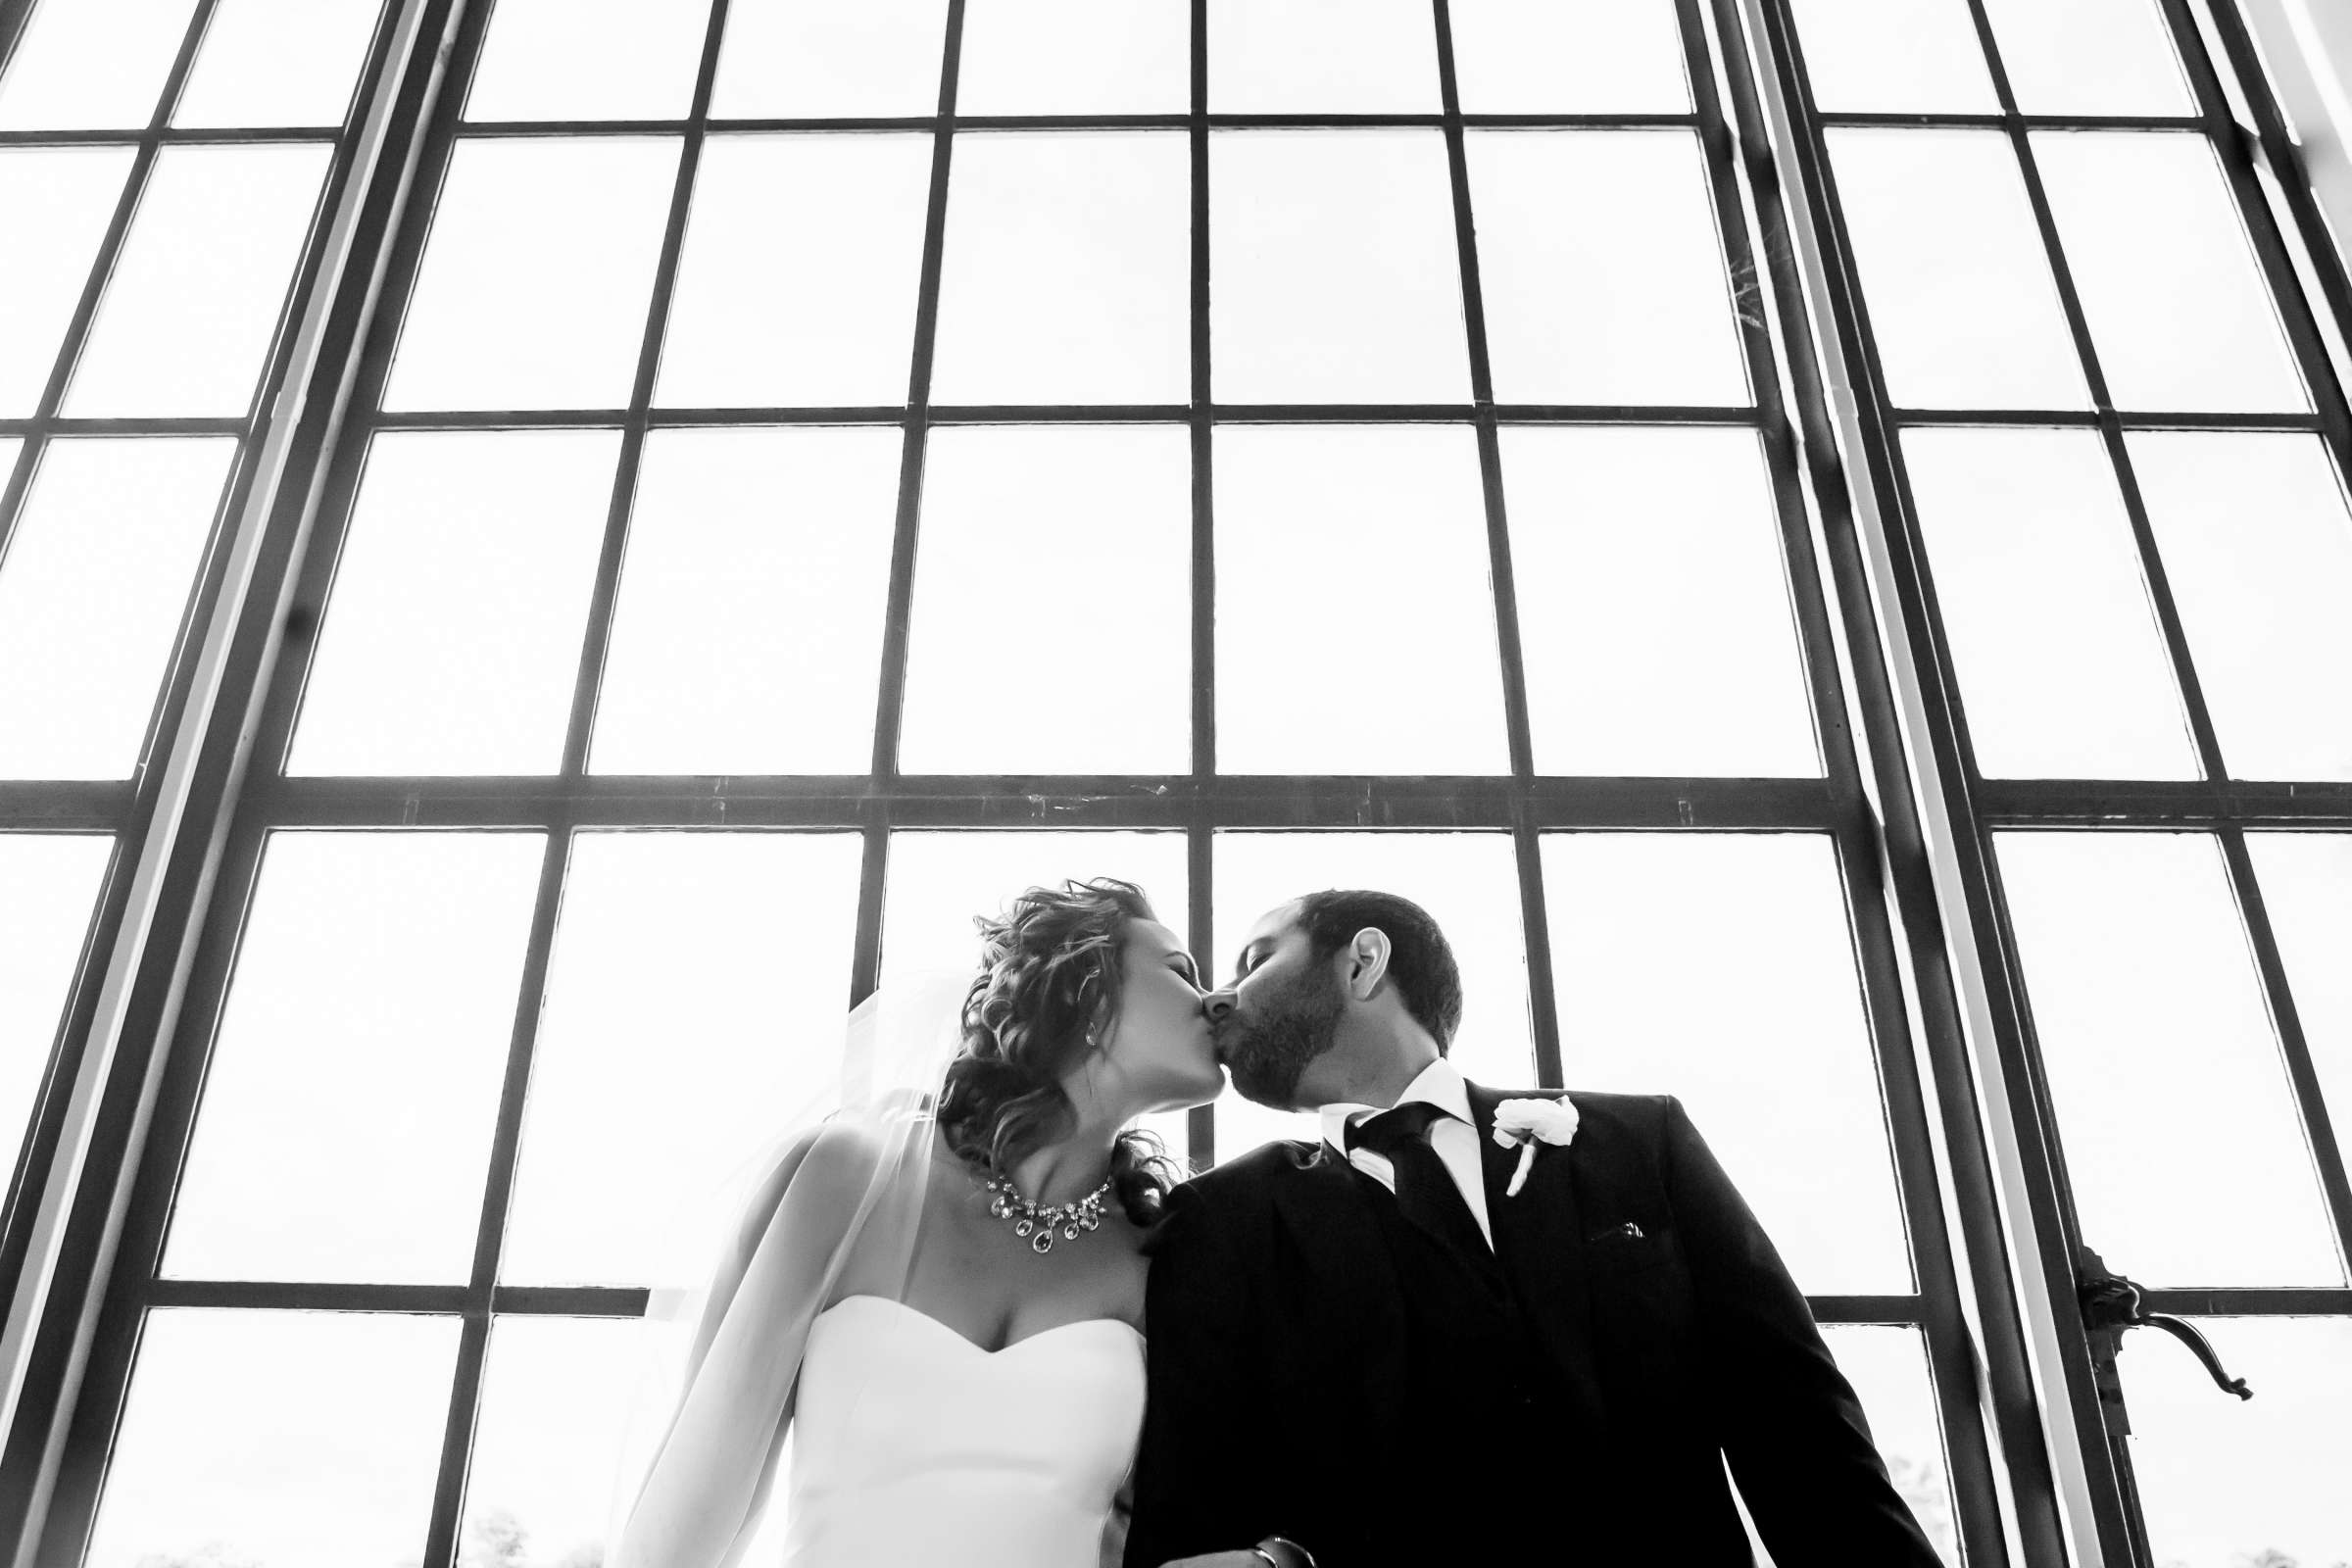 San Diego Museum of Art Wedding coordinated by First Comes Love Weddings & Events, Ruthie and Larry Wedding Photo #236753 by True Photography